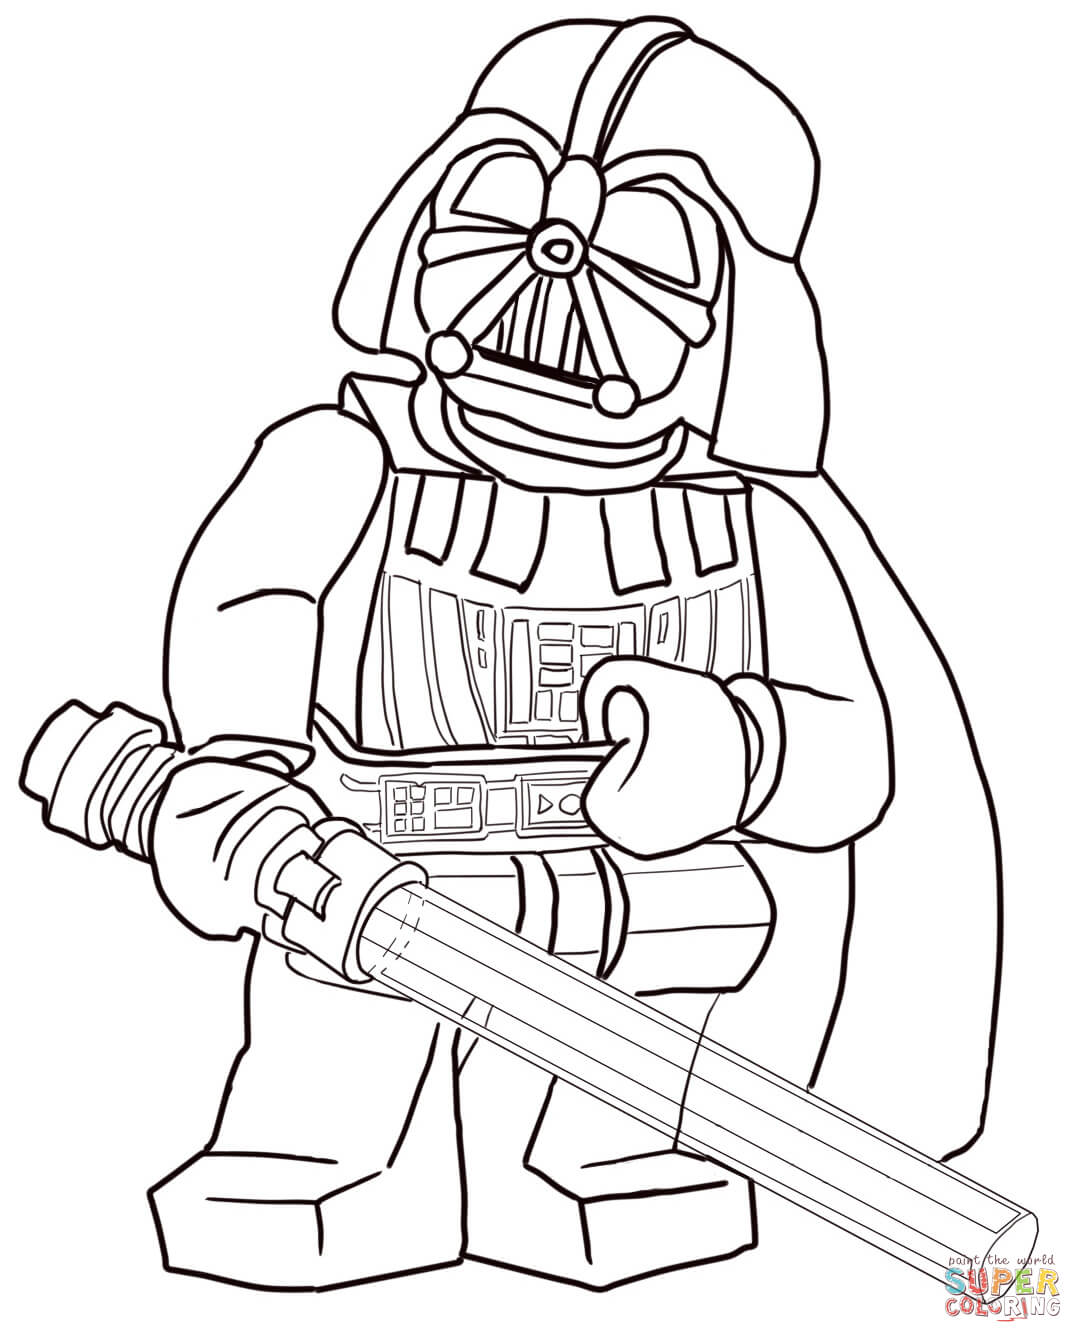 Lego Star Wars Darth Vader Coloring Page